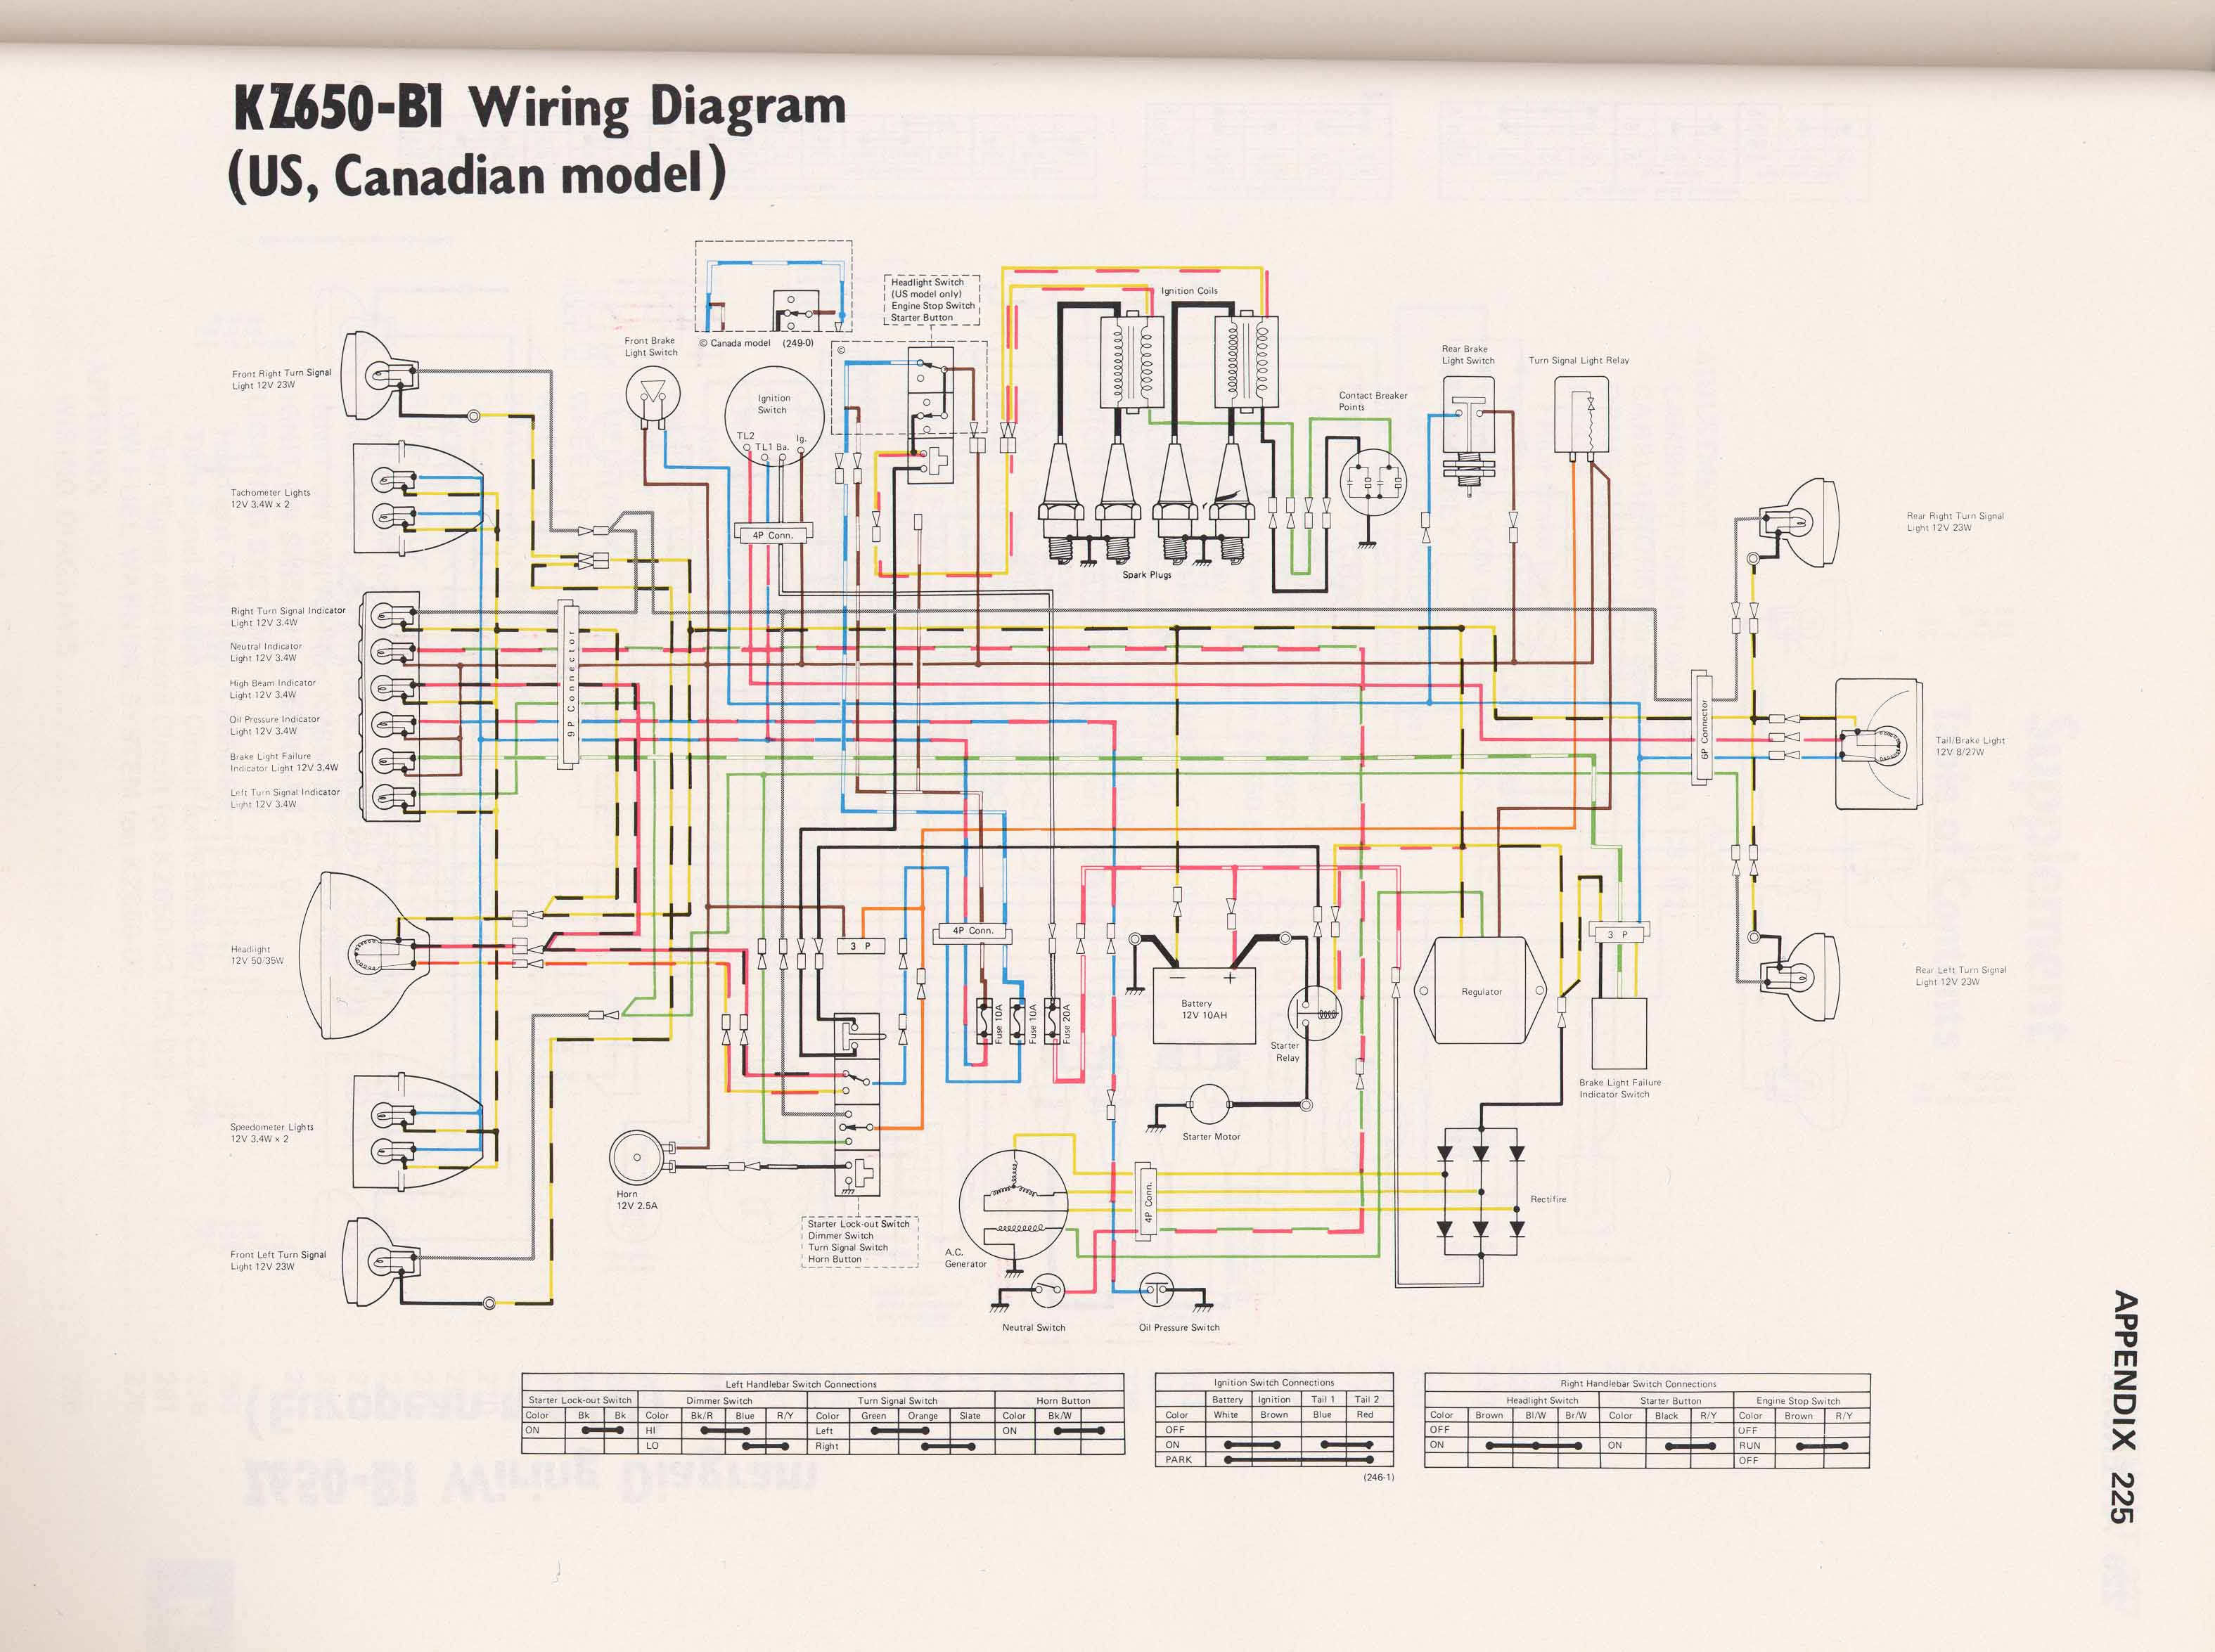 KZ650 B1 kz650 info wiring diagrams kawasaki z750 wiring diagram at creativeand.co